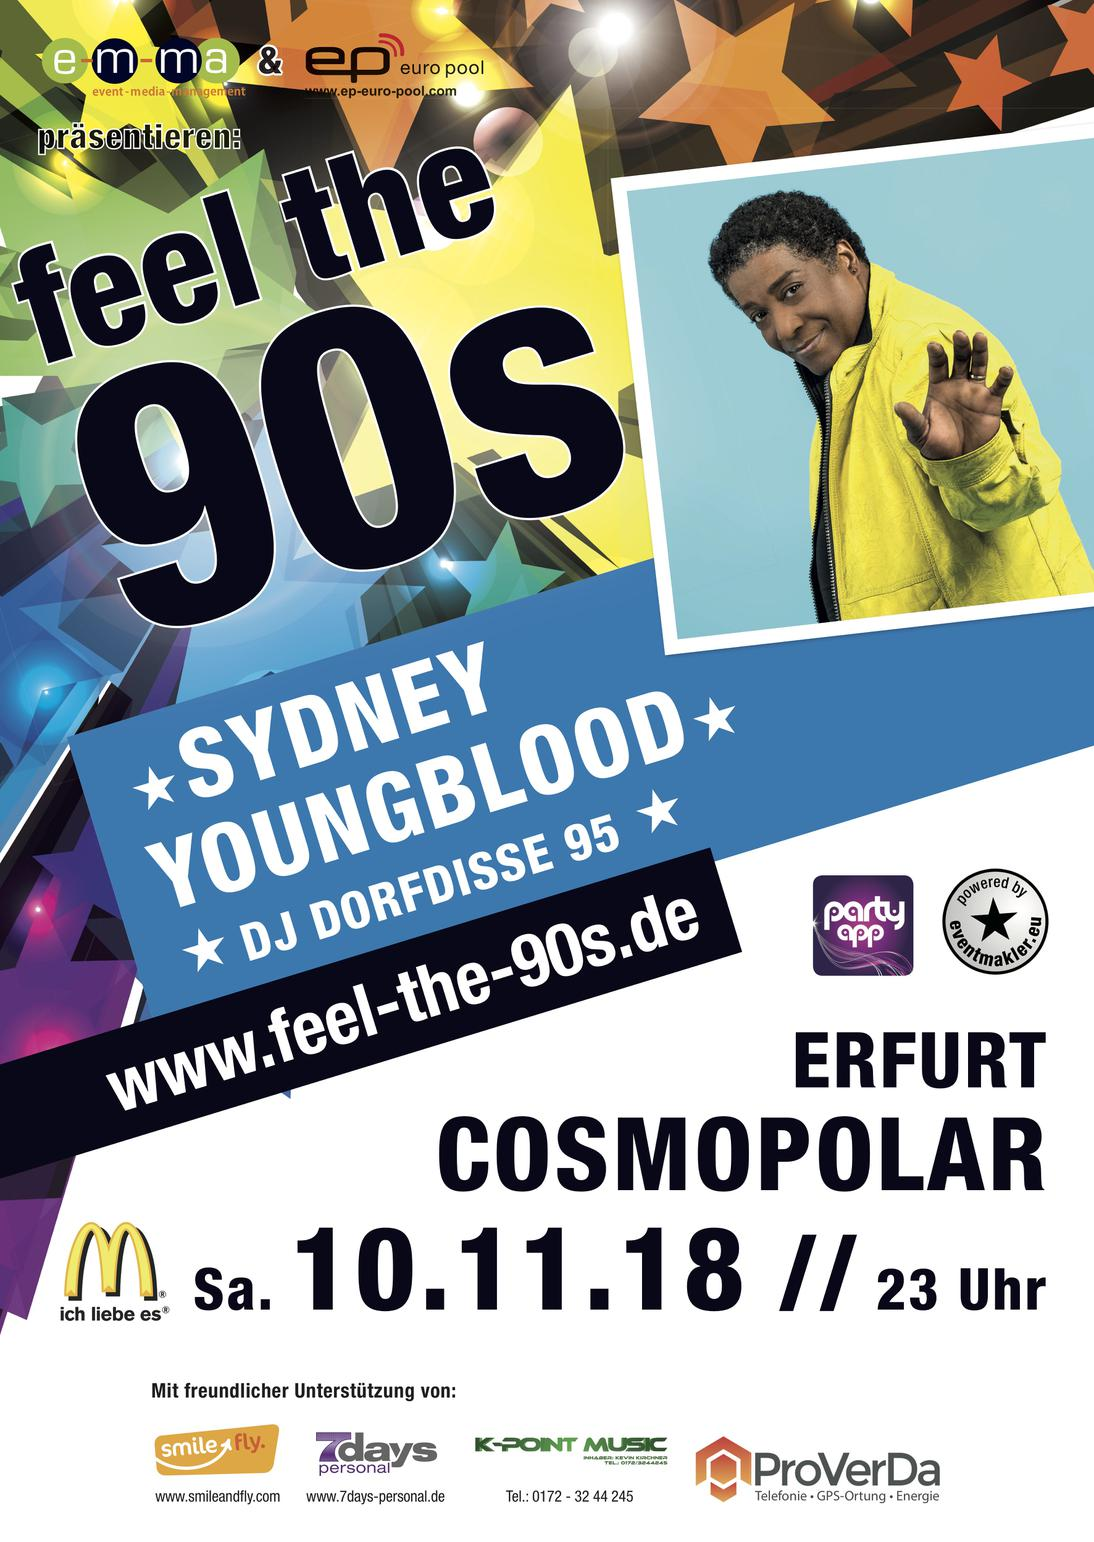 ★ Feel the 90s Erfurt ★ mit Sydney Youngblood & DJ Dorfdisse95